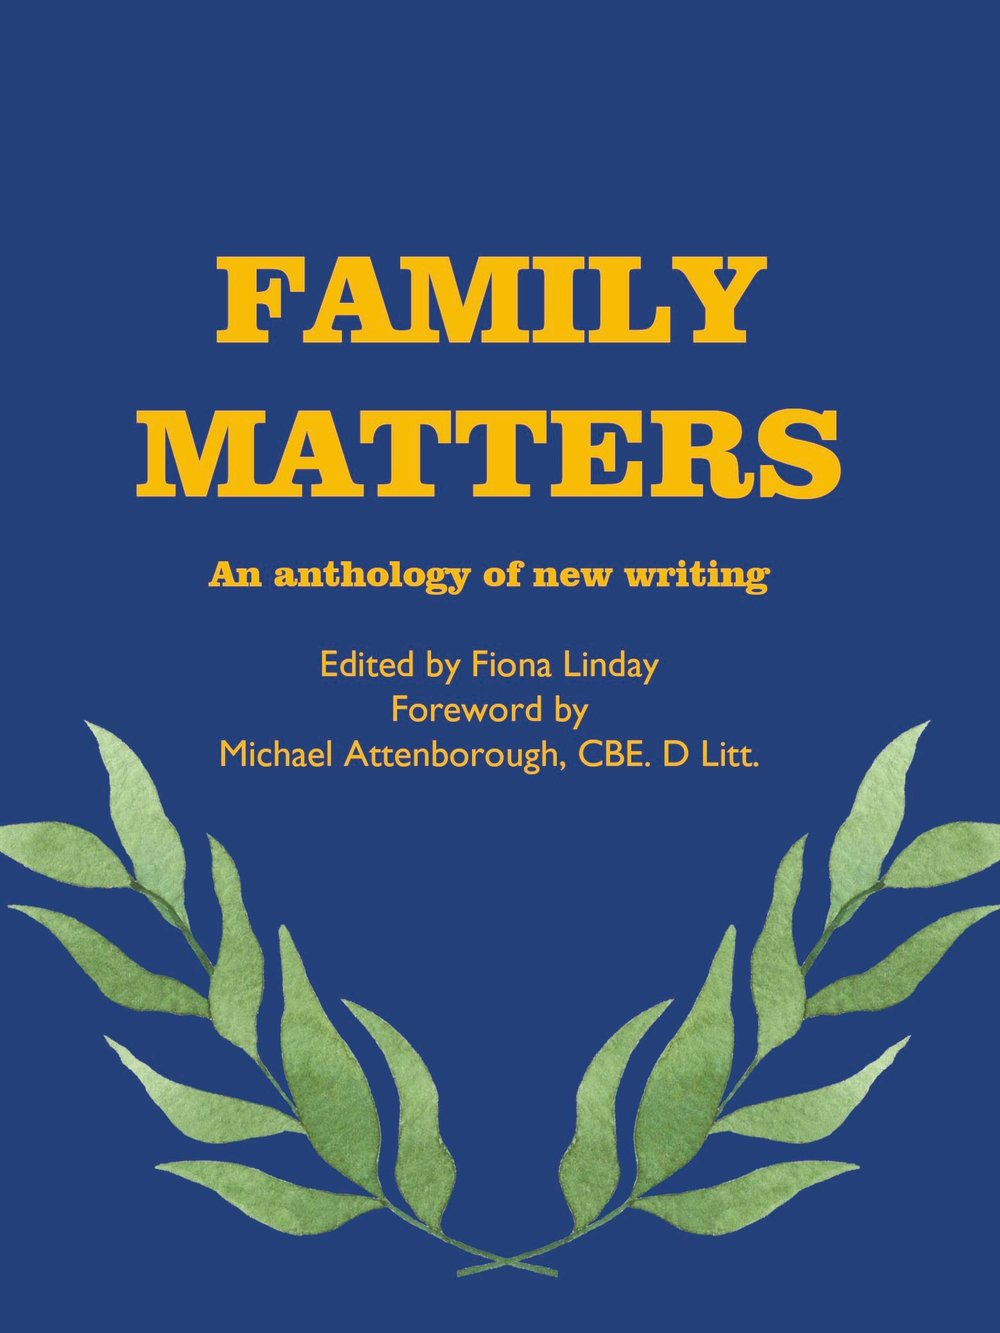 family matters anthology launch - On 2nd March, Sophie joined writers at the Attenborough Arts Centre to celebrate the launch of the Family Matters anthology.Sophie read two of her poems, 'Changing Seasons' and 'Footprints in the Snow', both of which were published in the collection.